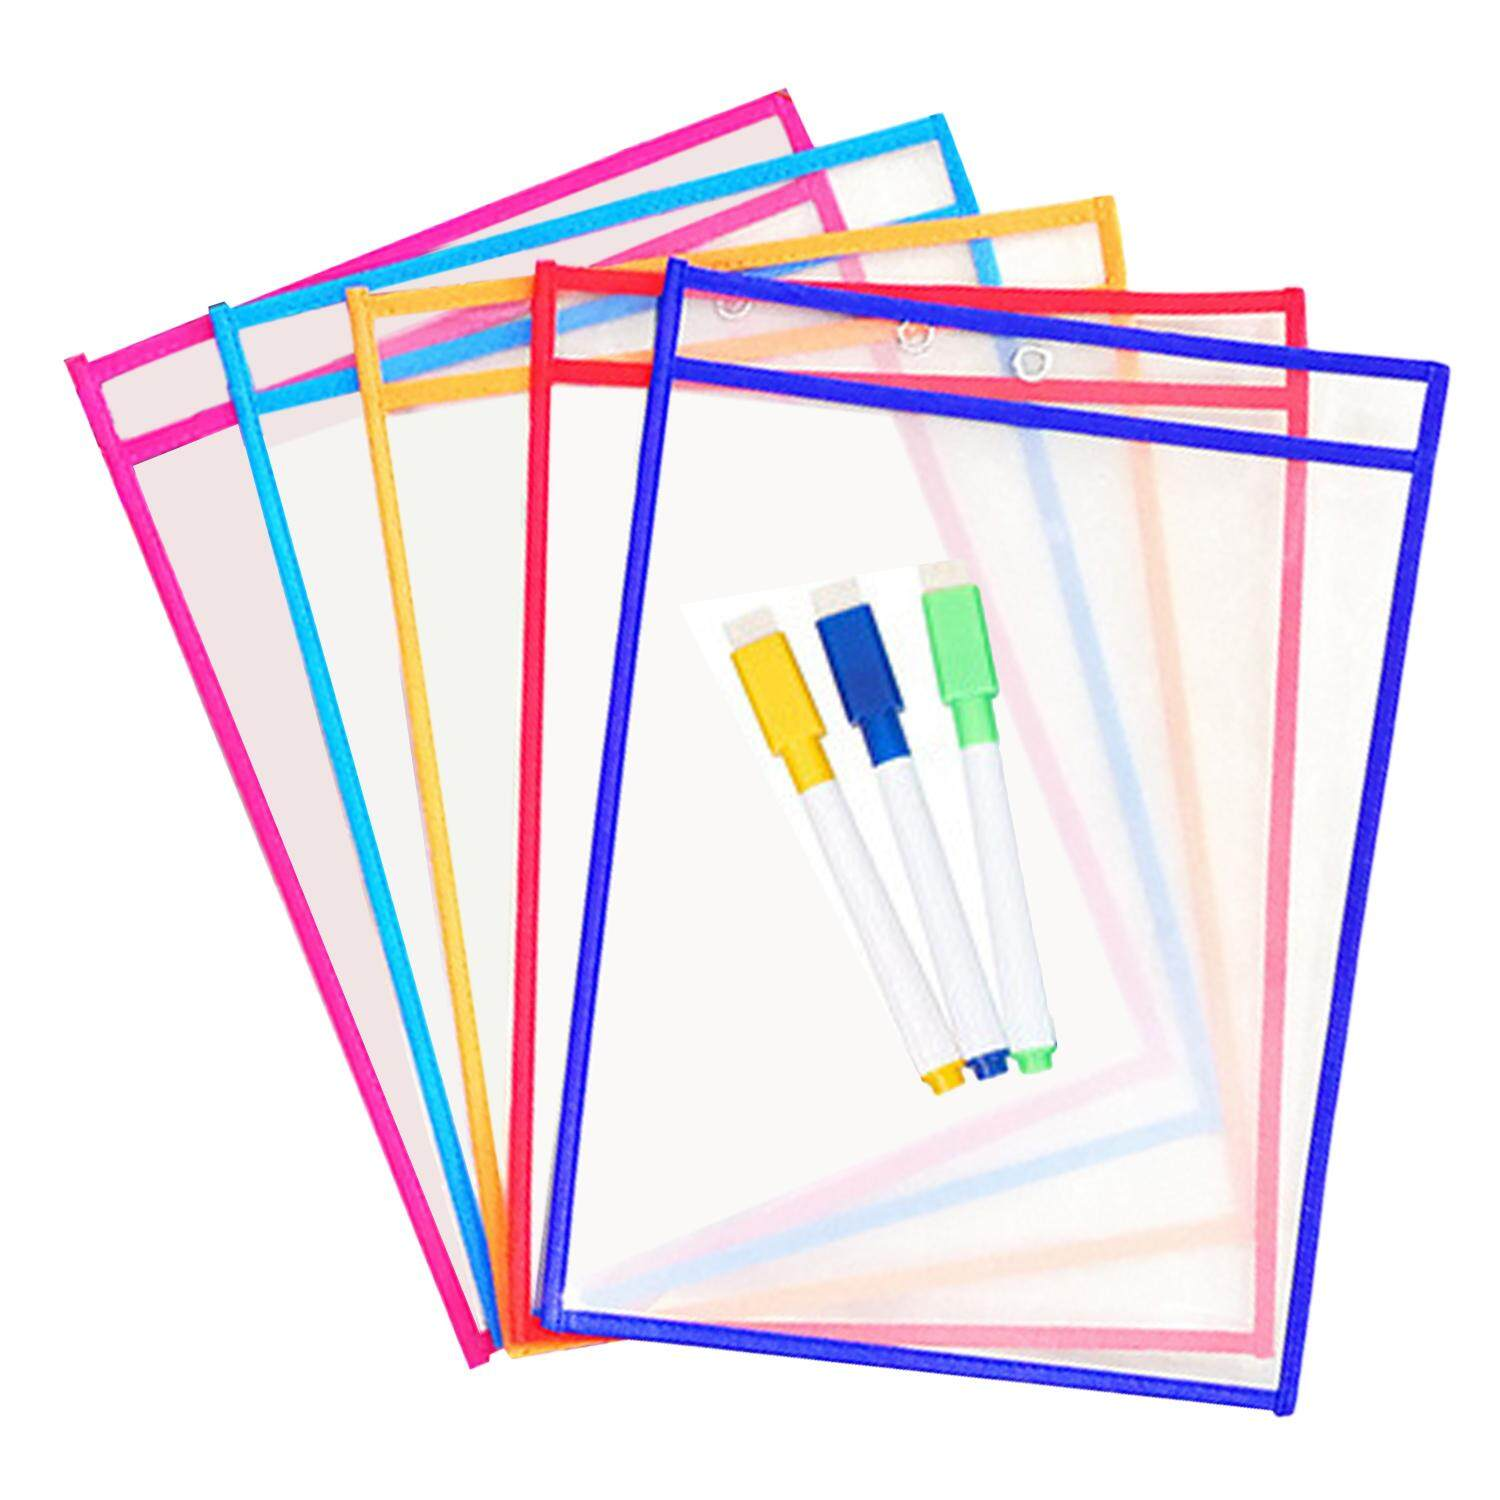 5pcs Reusable Transparent Clear Pvc Dry Erase Pockets Sleeves + 3pcs Pens For Office Learning Classroom Organization Teaching Supplies Random Color By Jelly Store.